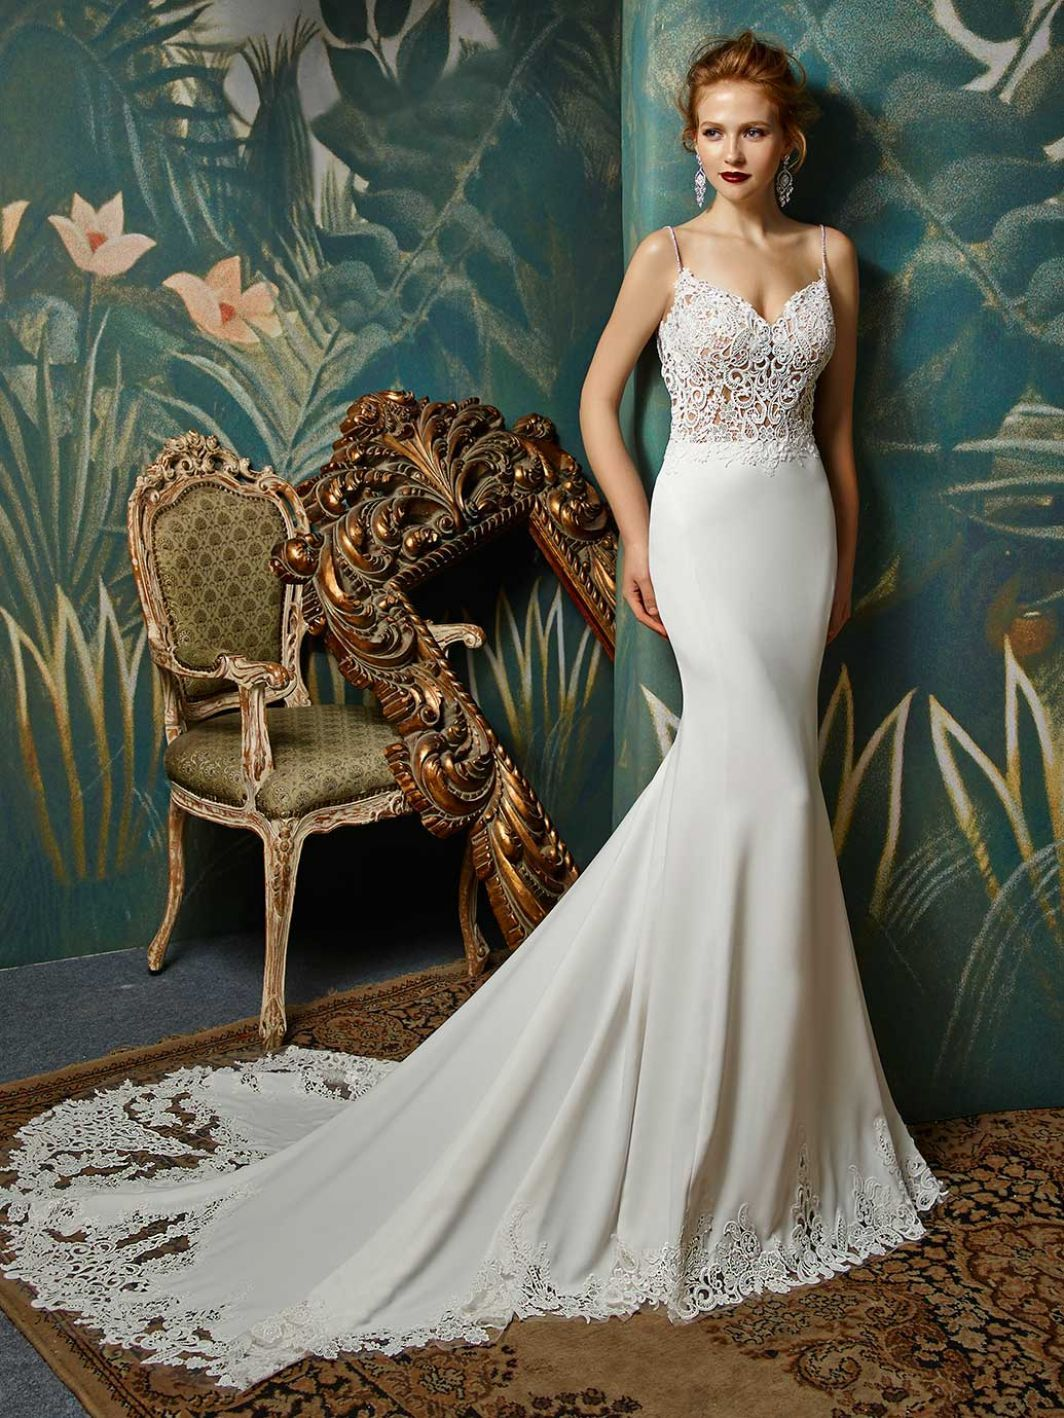 White and blue wedding dress   Blue by Enzoani Juri Front View  Renewal Dresses  Pinterest